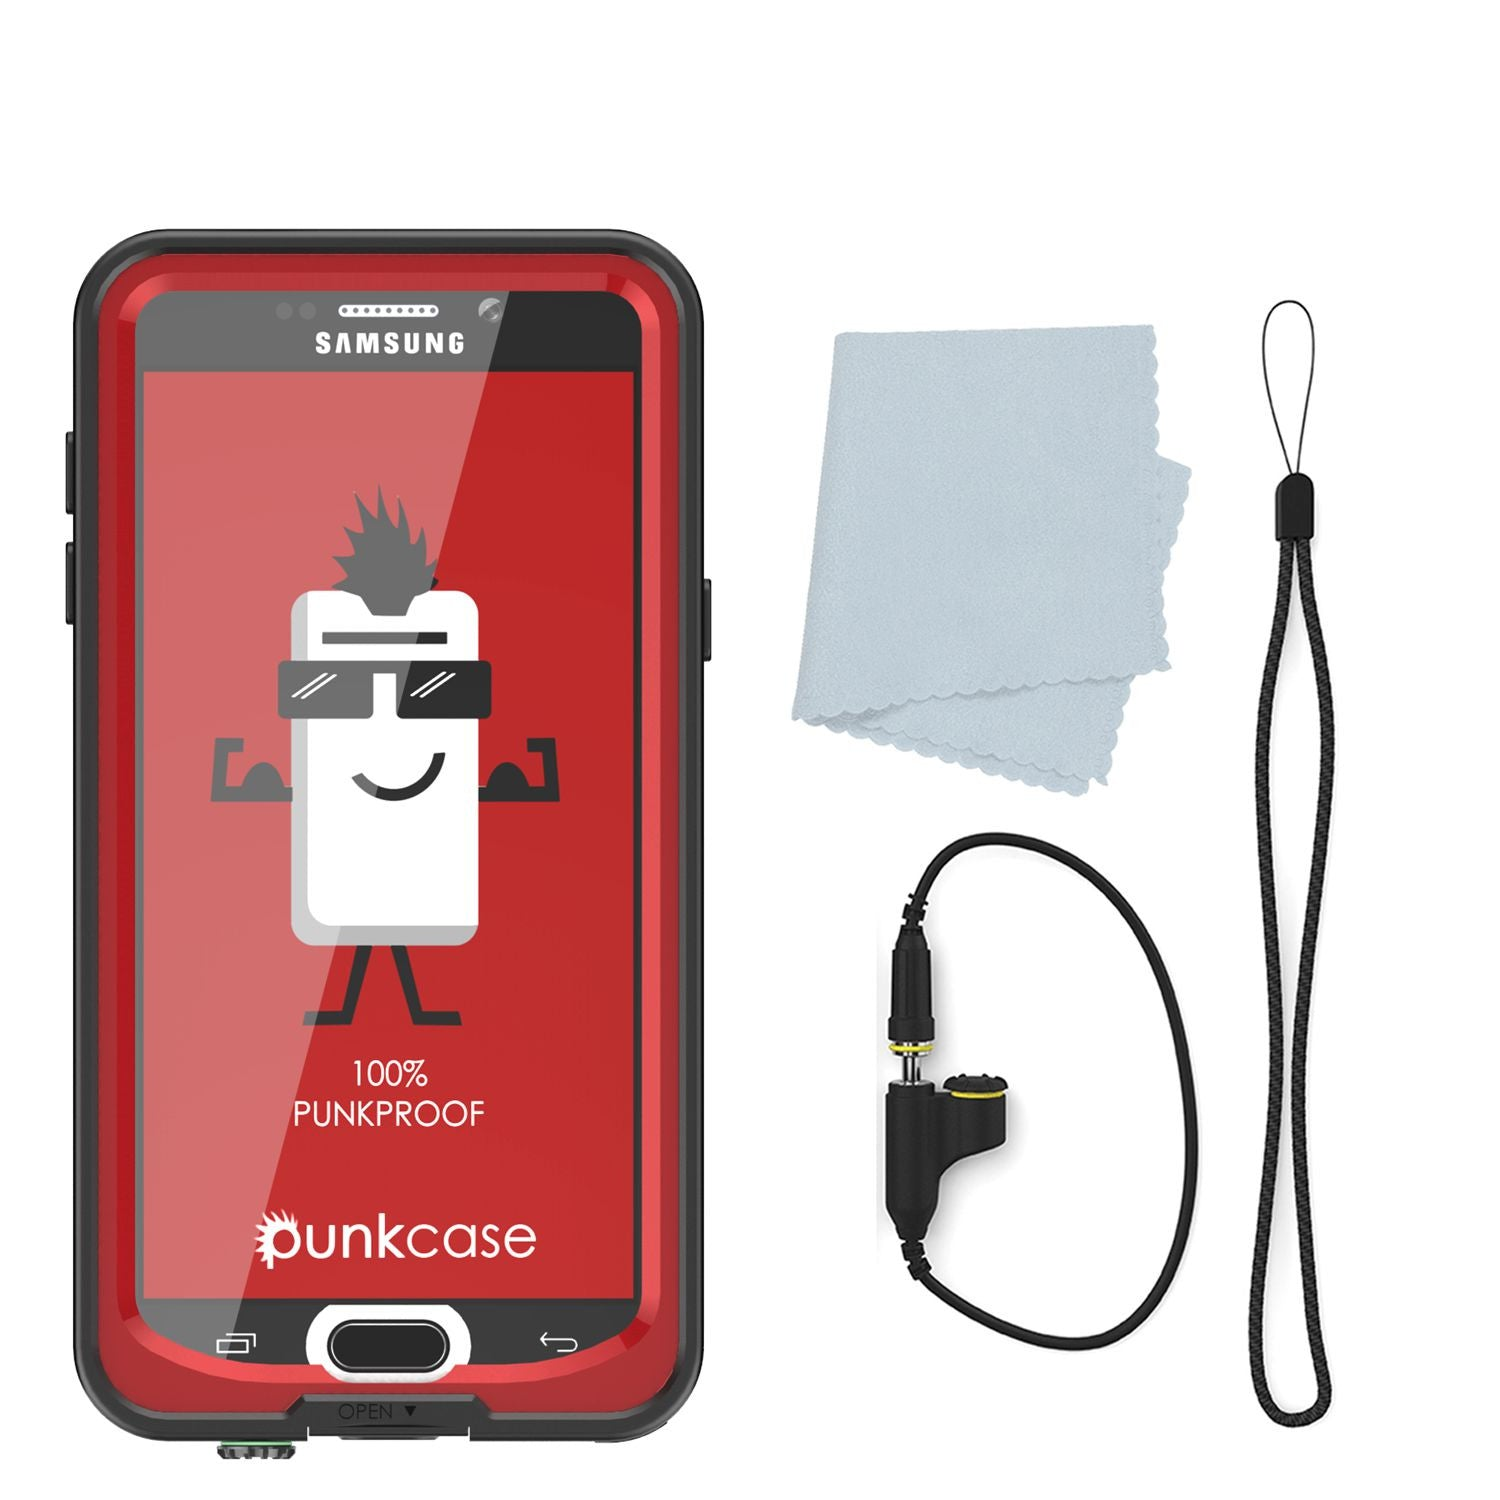 Galaxy Note 5 Waterproof Case, Punkcase StudStar Red Water/Shock/Dirt/Snow Proof | Lifetime Warranty